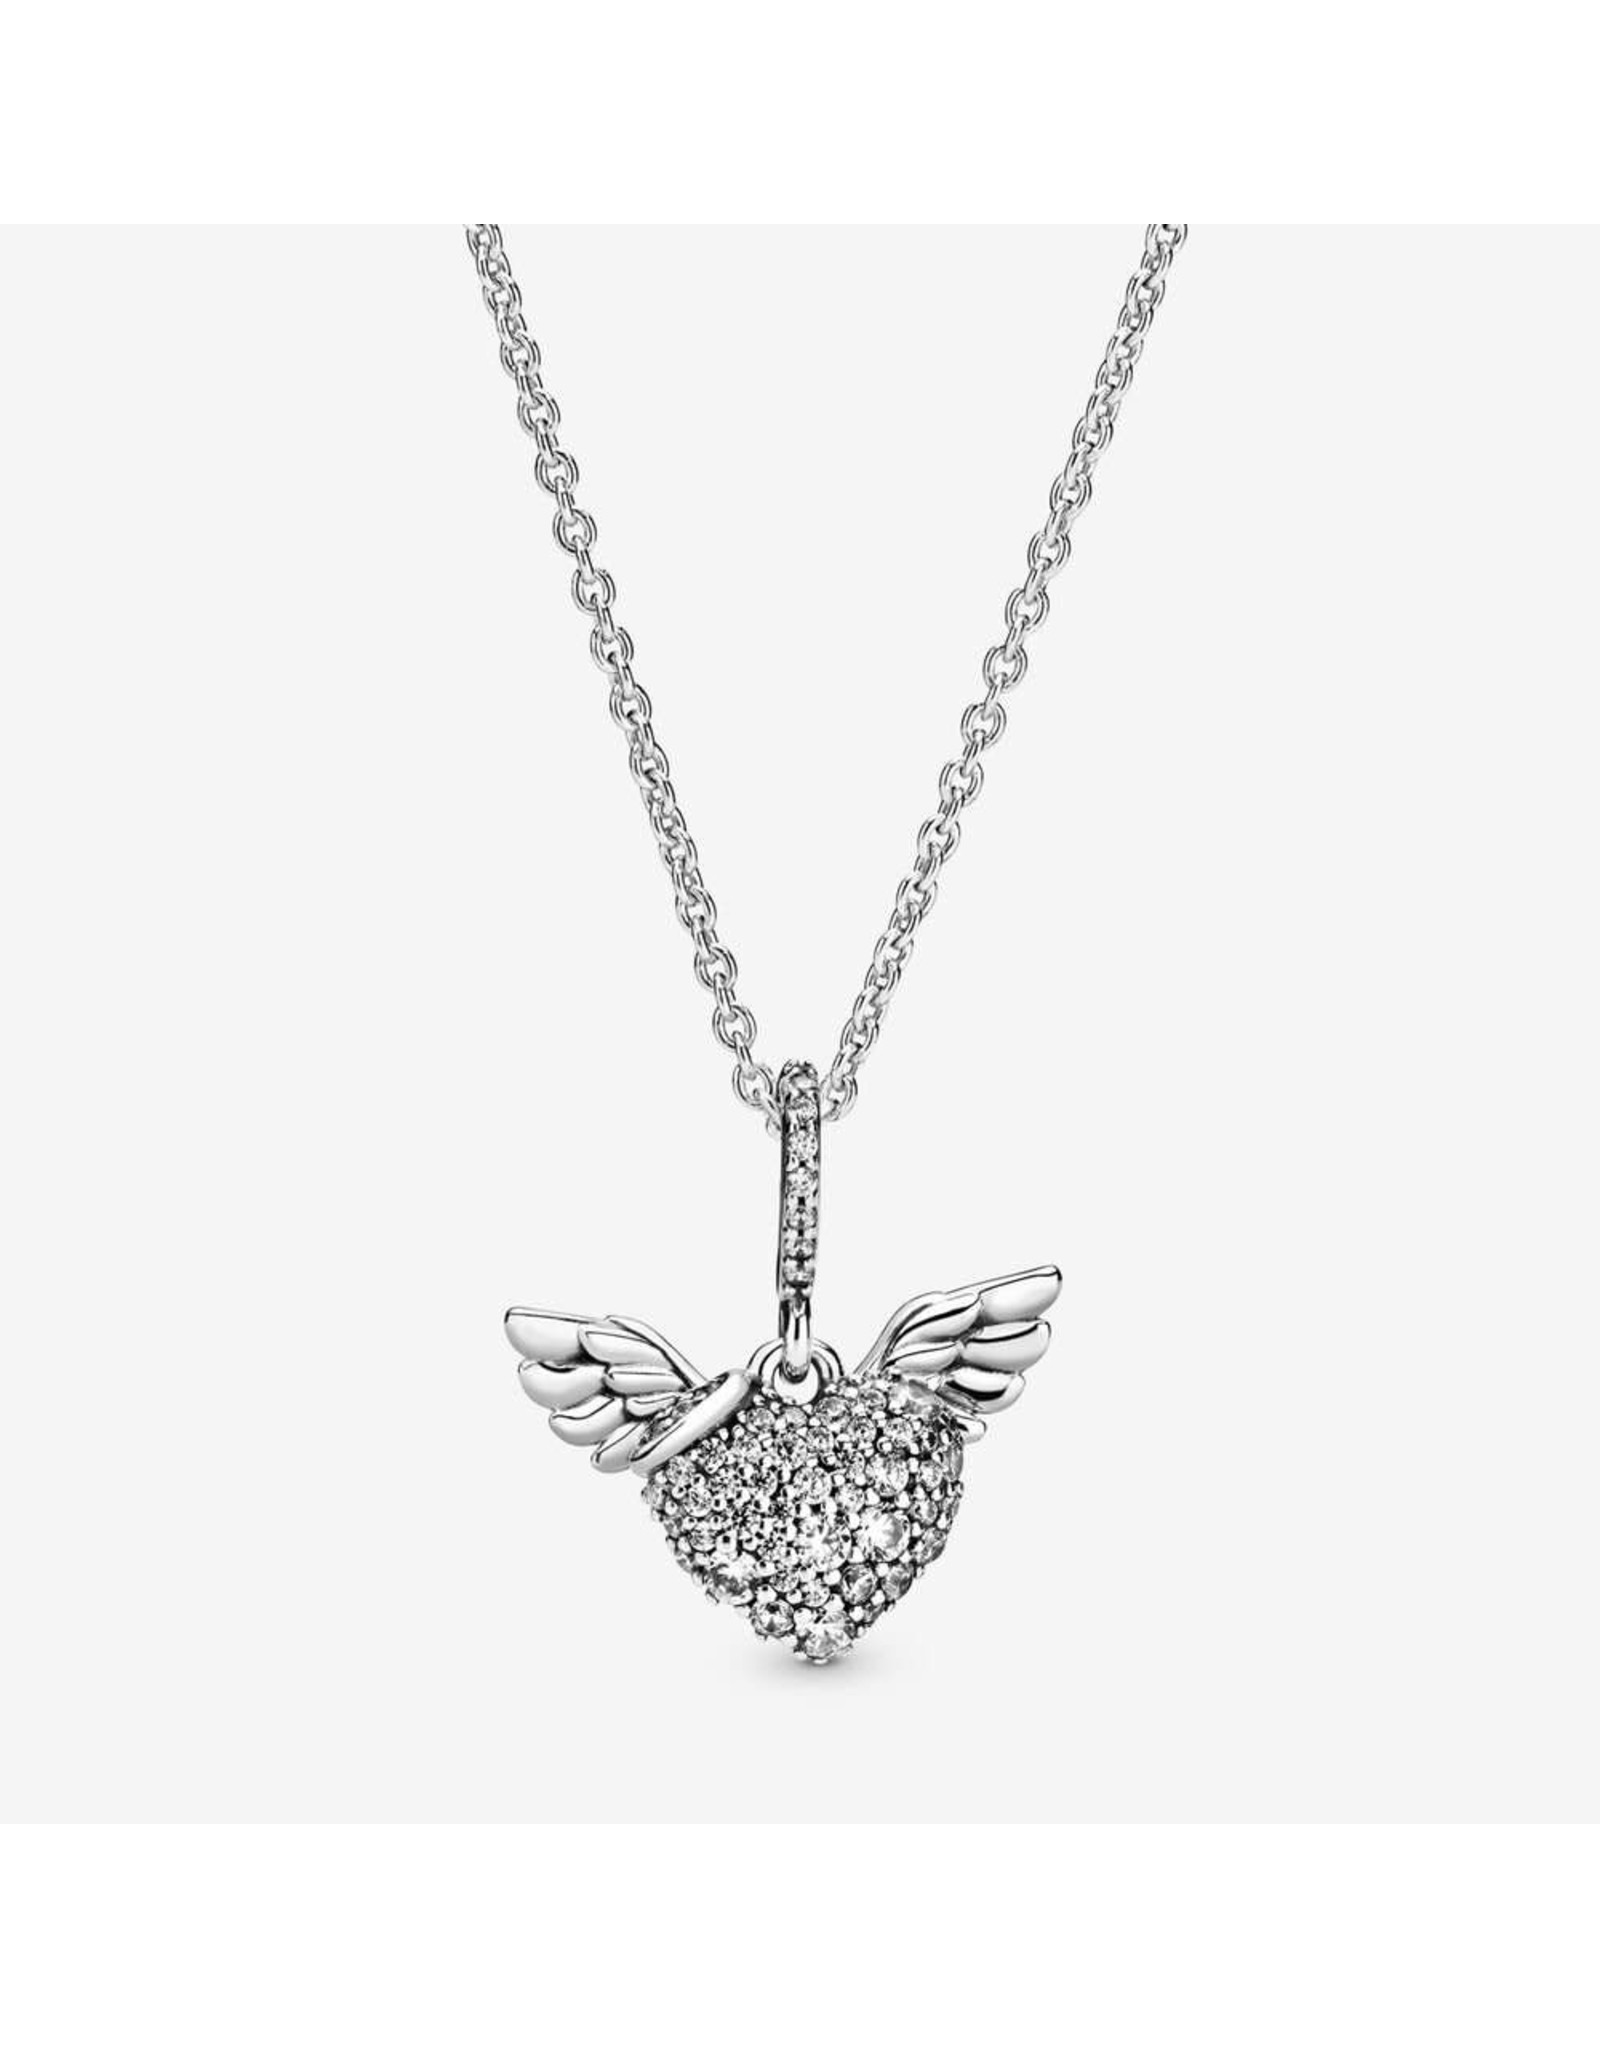 Pandora Pandora Necklace, 398505C01-45, Heart And Wings, Sterling Silver 45 cm